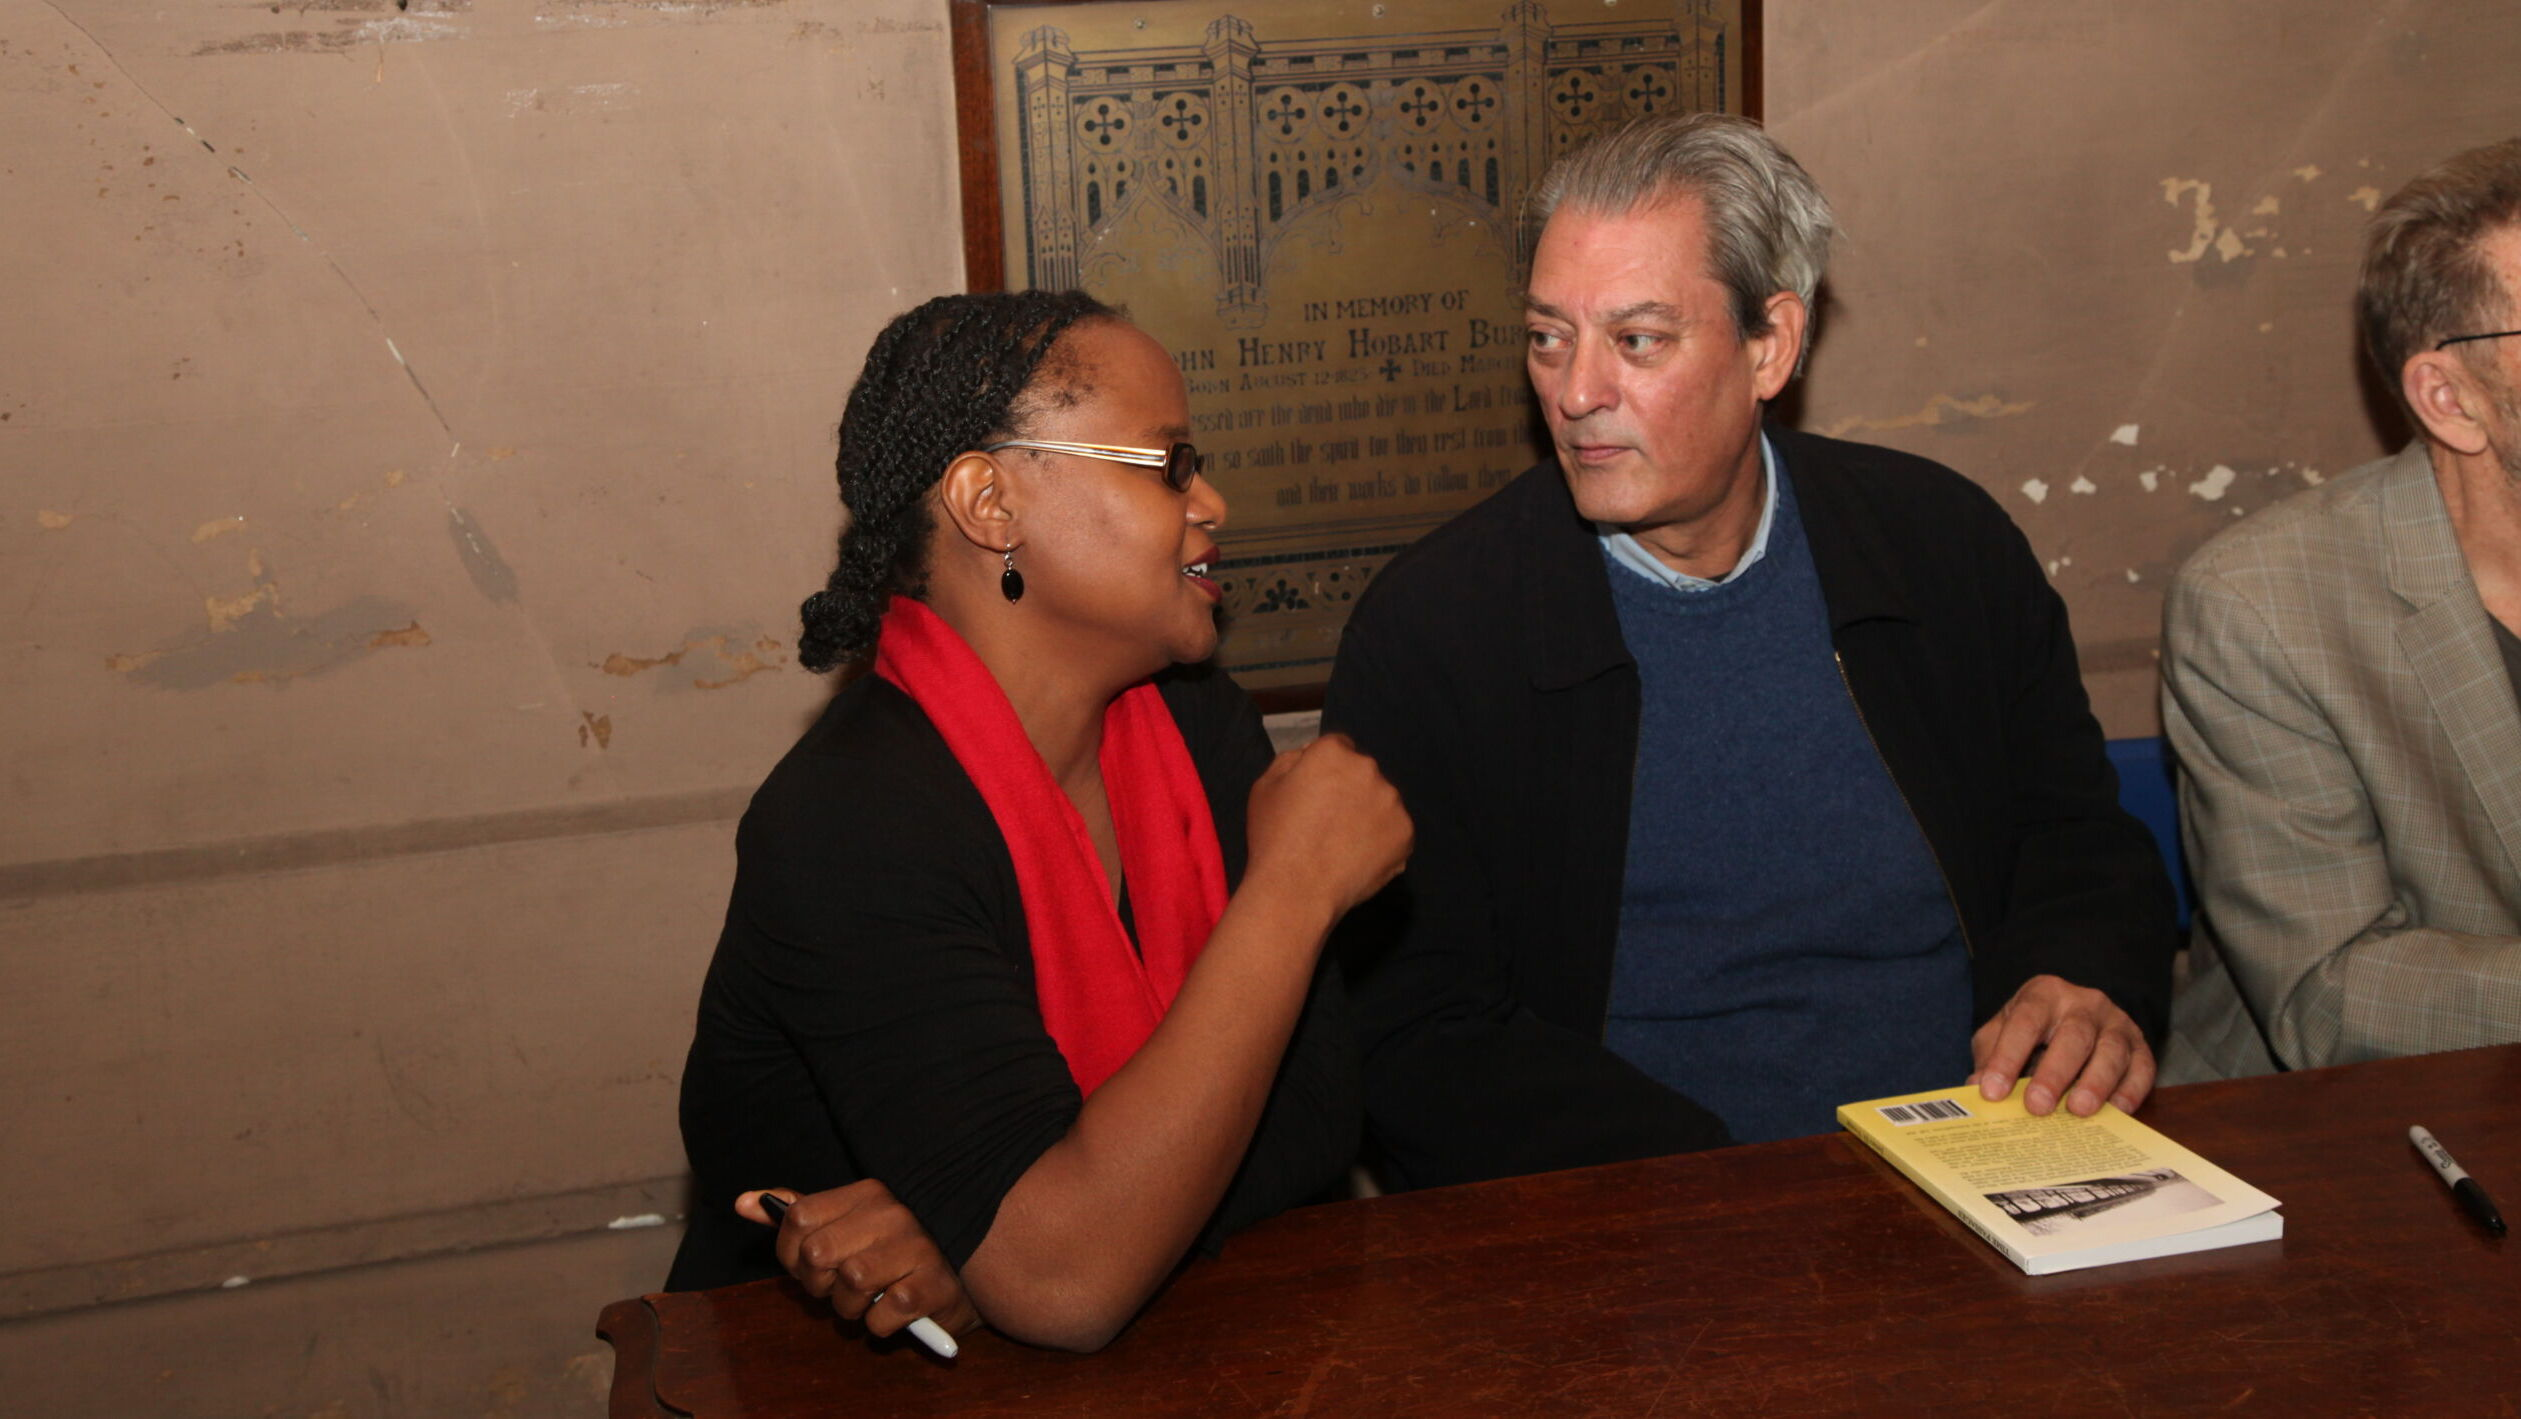 A black woman holds a pen and talks to white man who listens next to her. Both are seated at wooden table. There is a book on table in front of man. Behind them is a commemorative plaque on a wall that needs repainting.